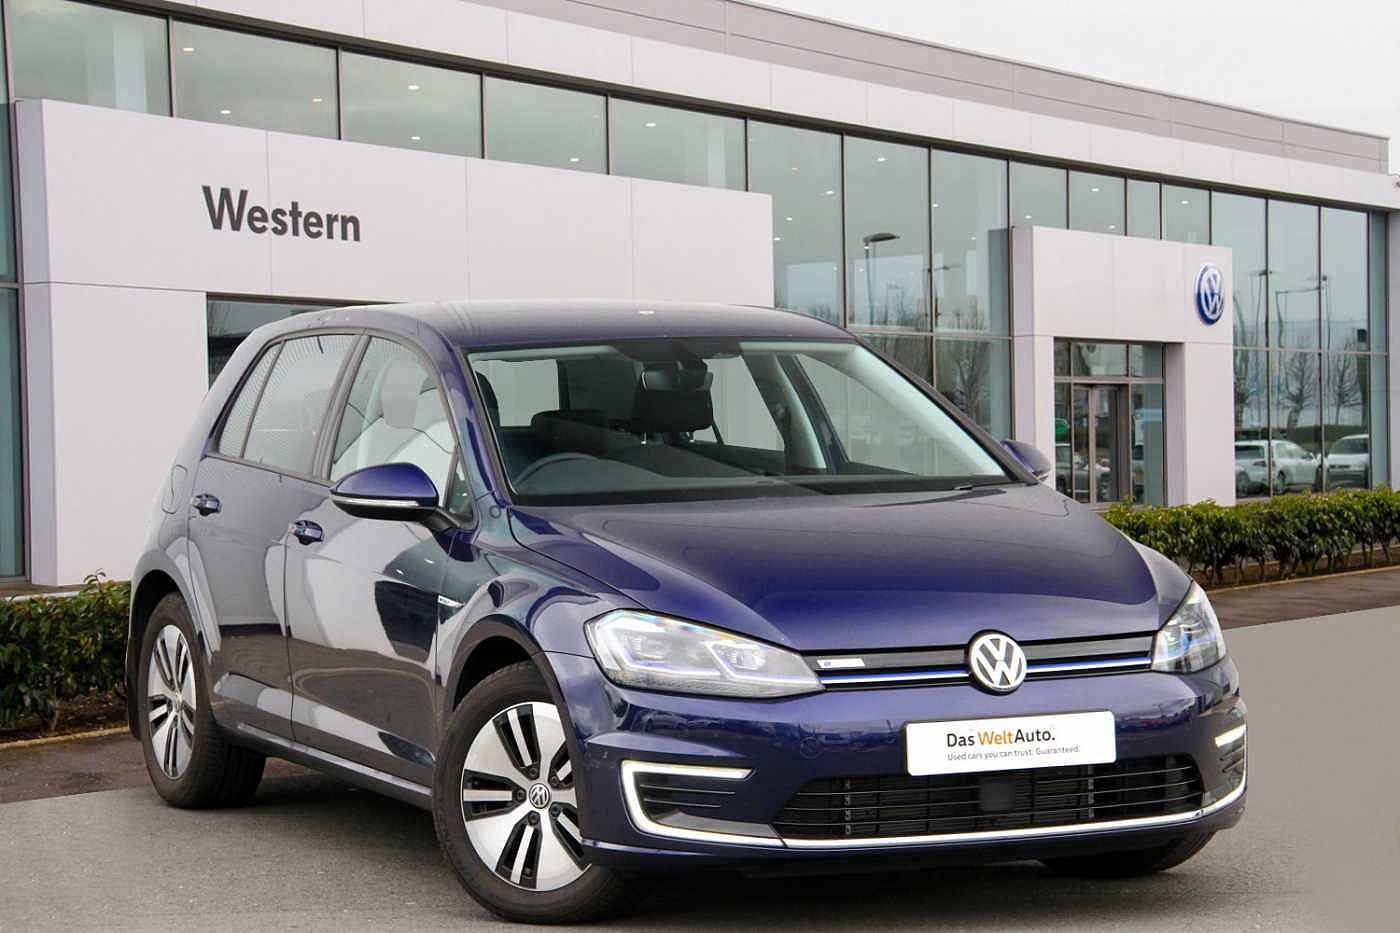 2019 Golf MK7 Facelift E (136ps) e-5dr for Sale in Edinburgh